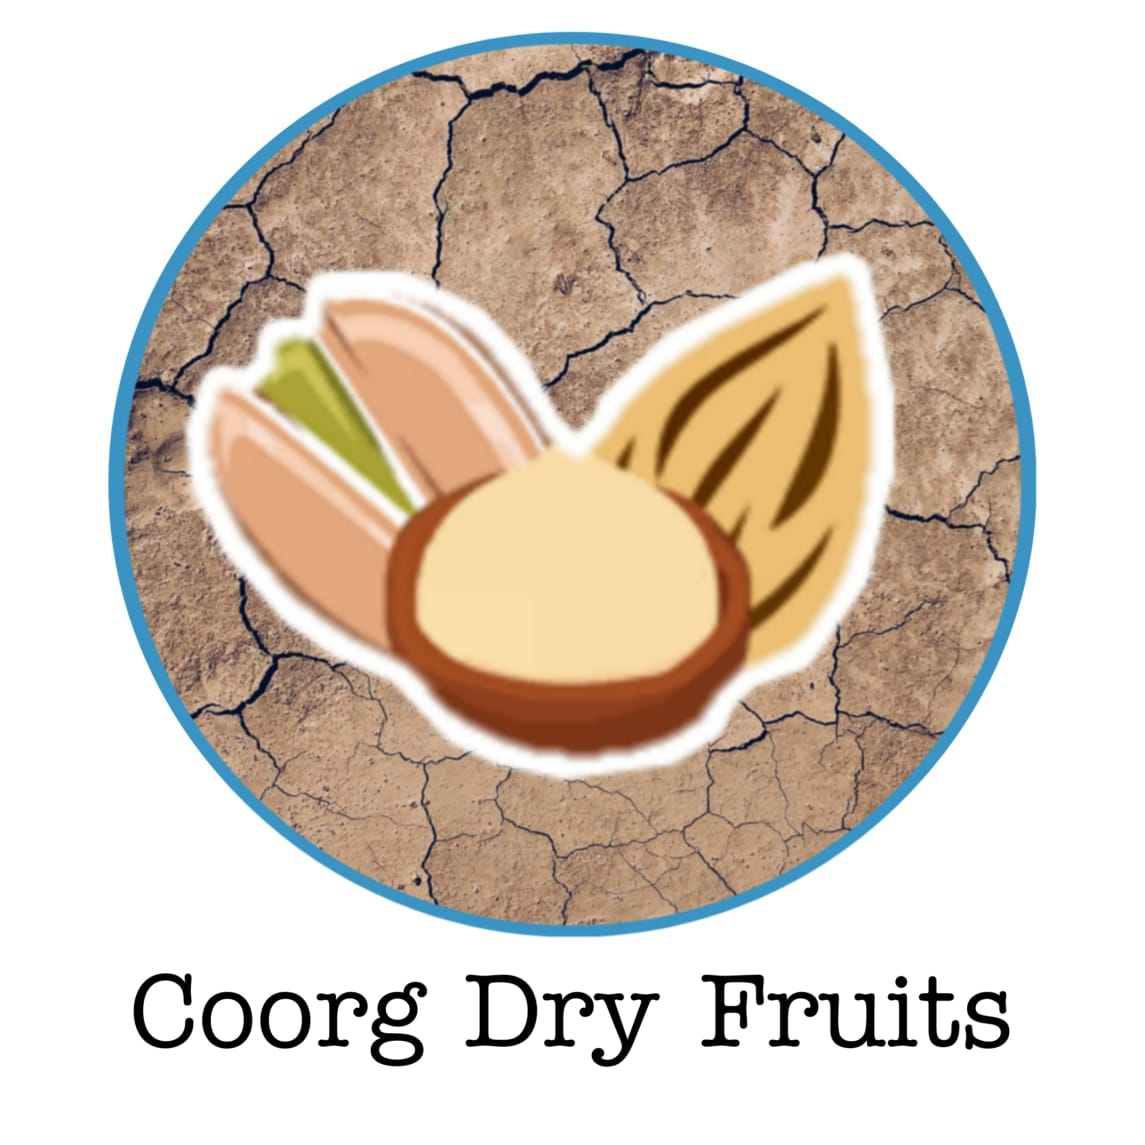 Coorg Dry Fruits